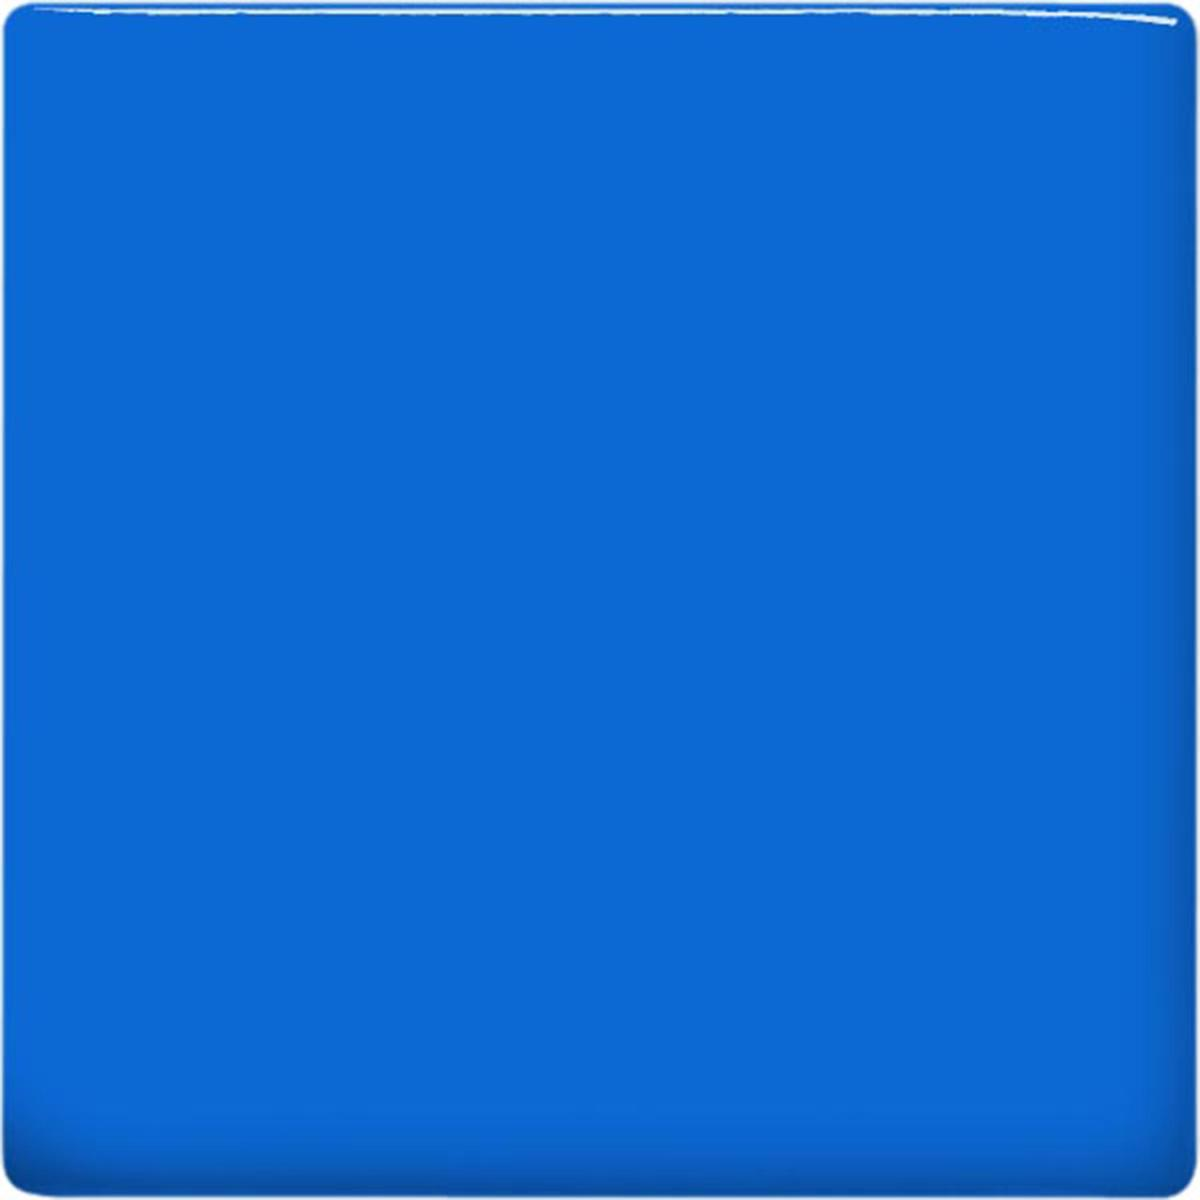 1920x1080 Medium Electric Blue Solid Color Background